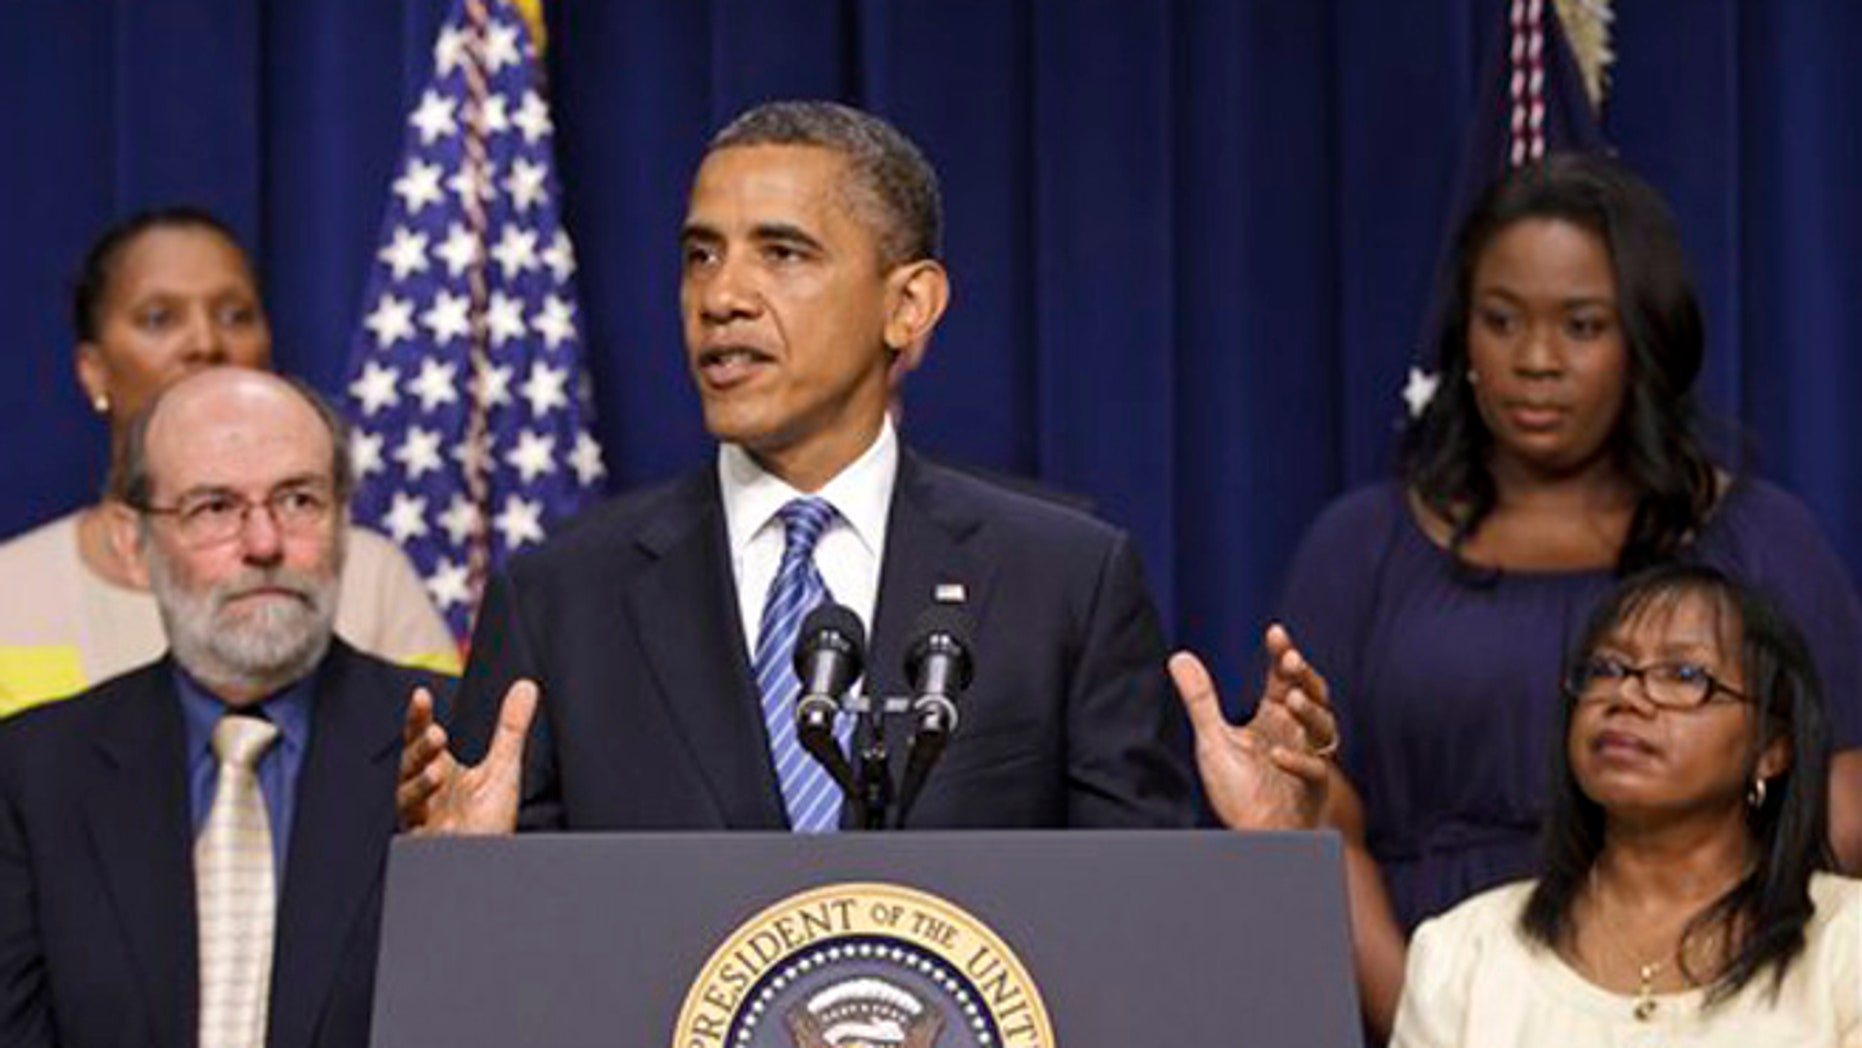 Friday, August 3, 2012: President Barack Obama talks about taxes in Eisenhower Executive Office Building in Washington.